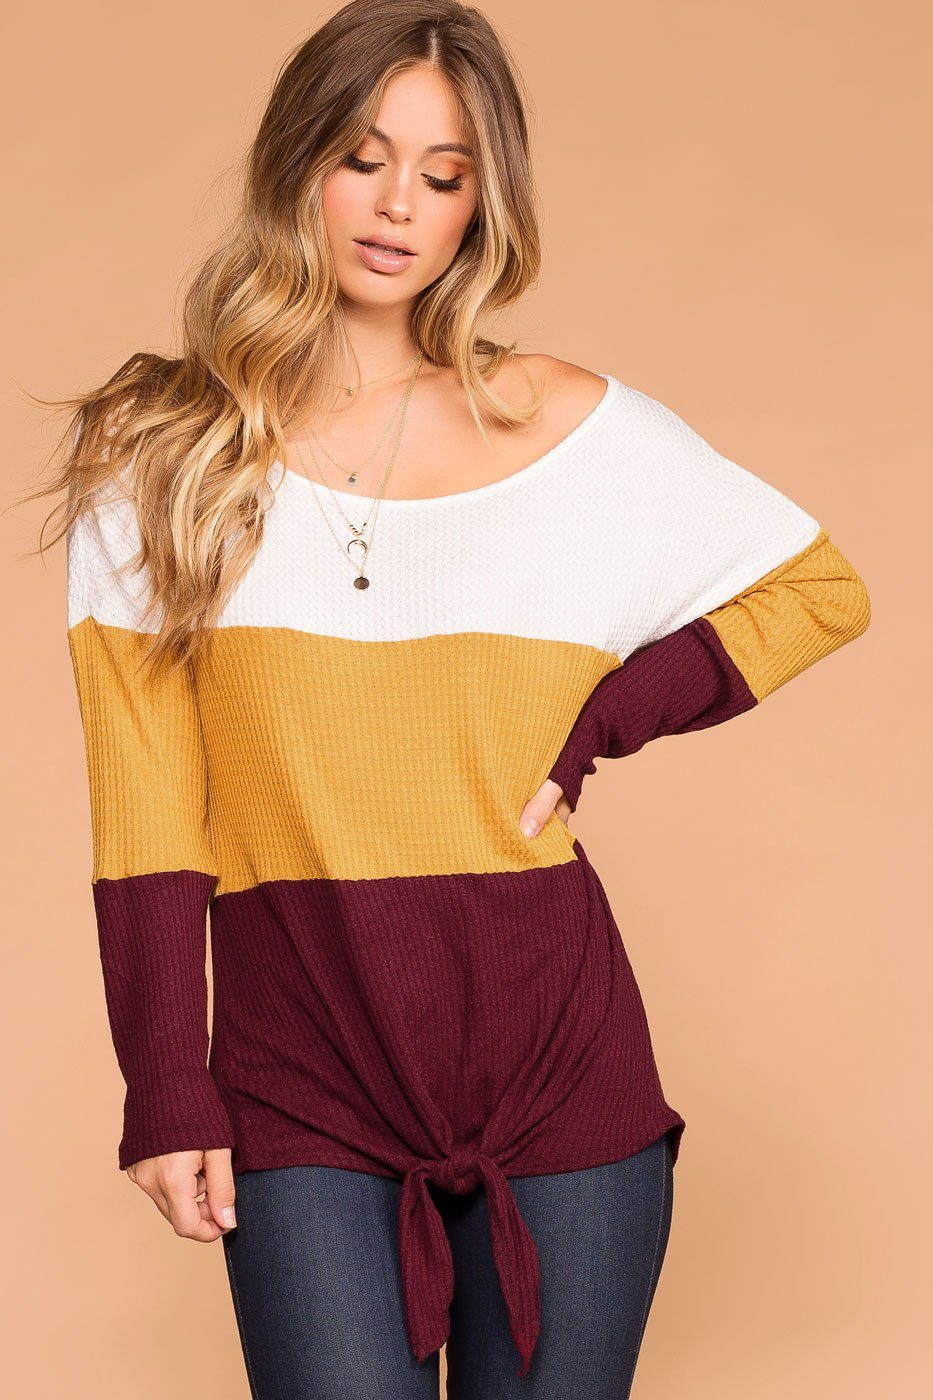 Sabrina TopR Block Mustard Knit Waffle Burgundy Front Tie And Color O8Xn0kwP